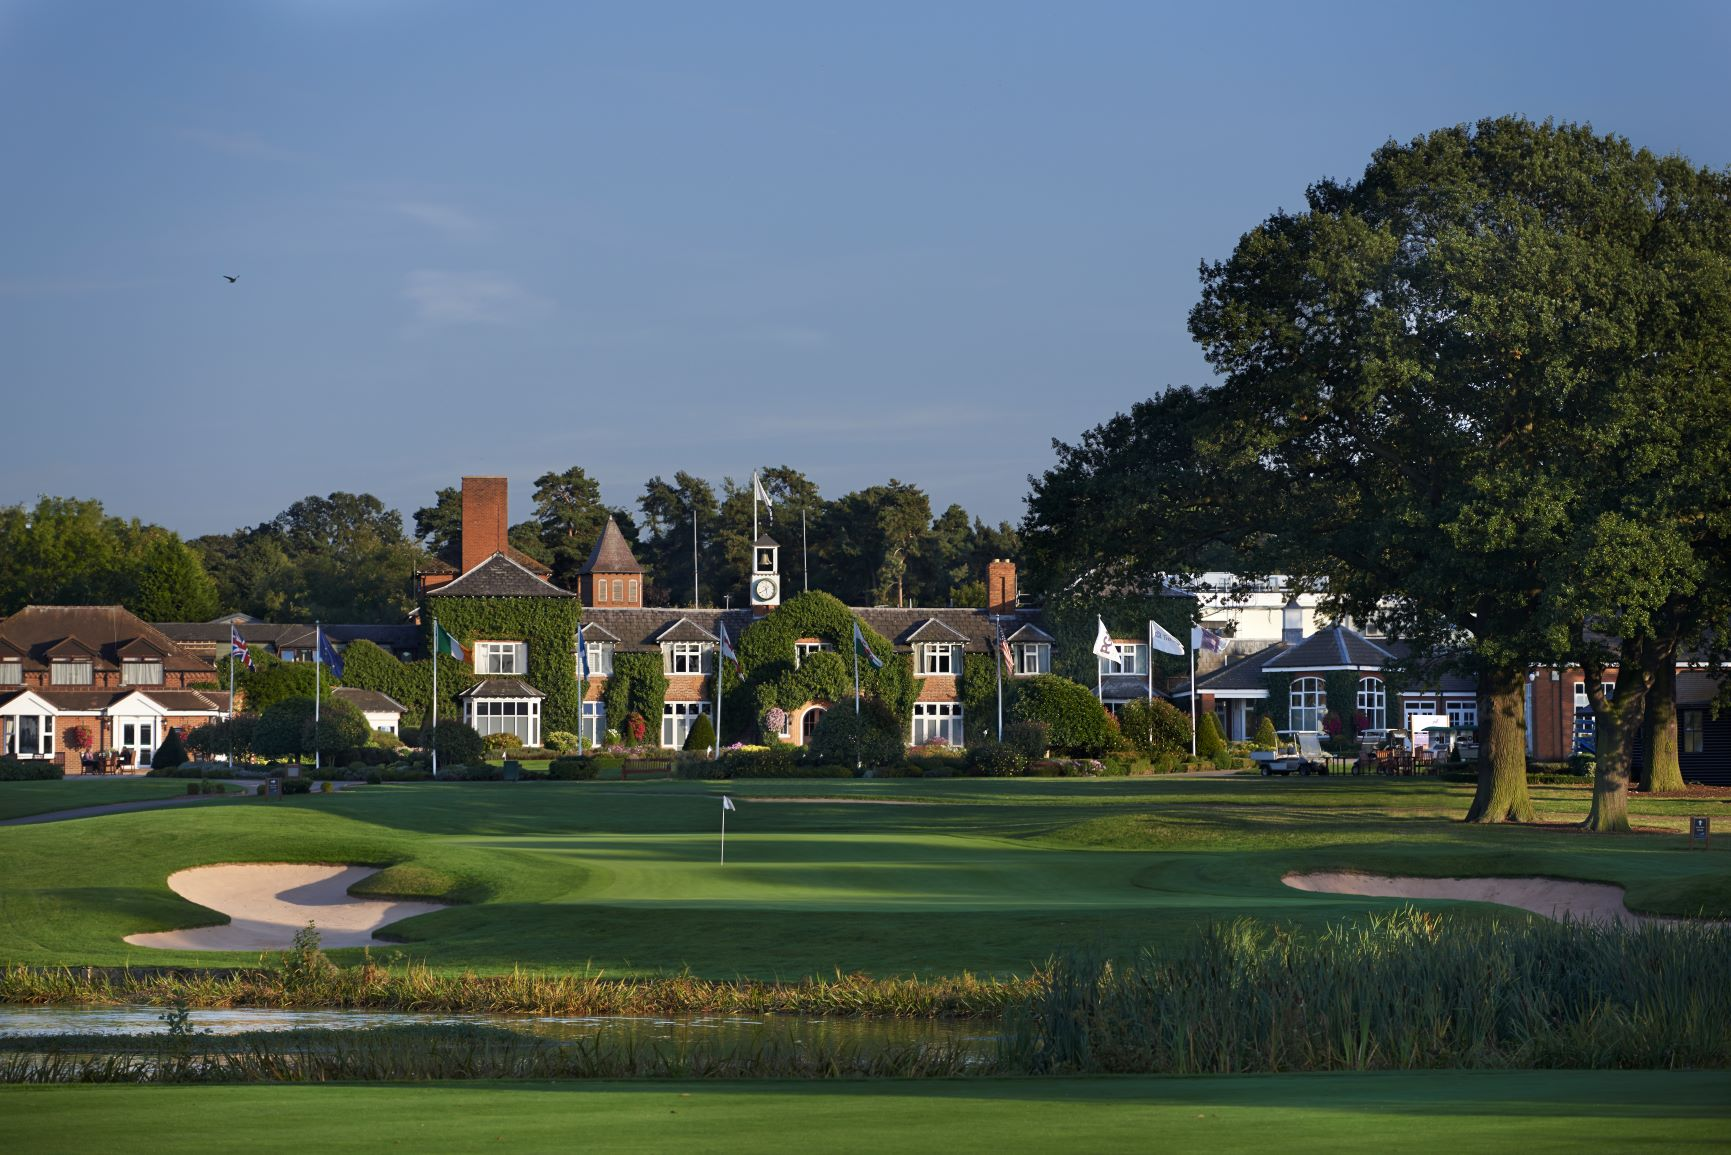 The-Belfry-Manor-House-Brabazon-18th